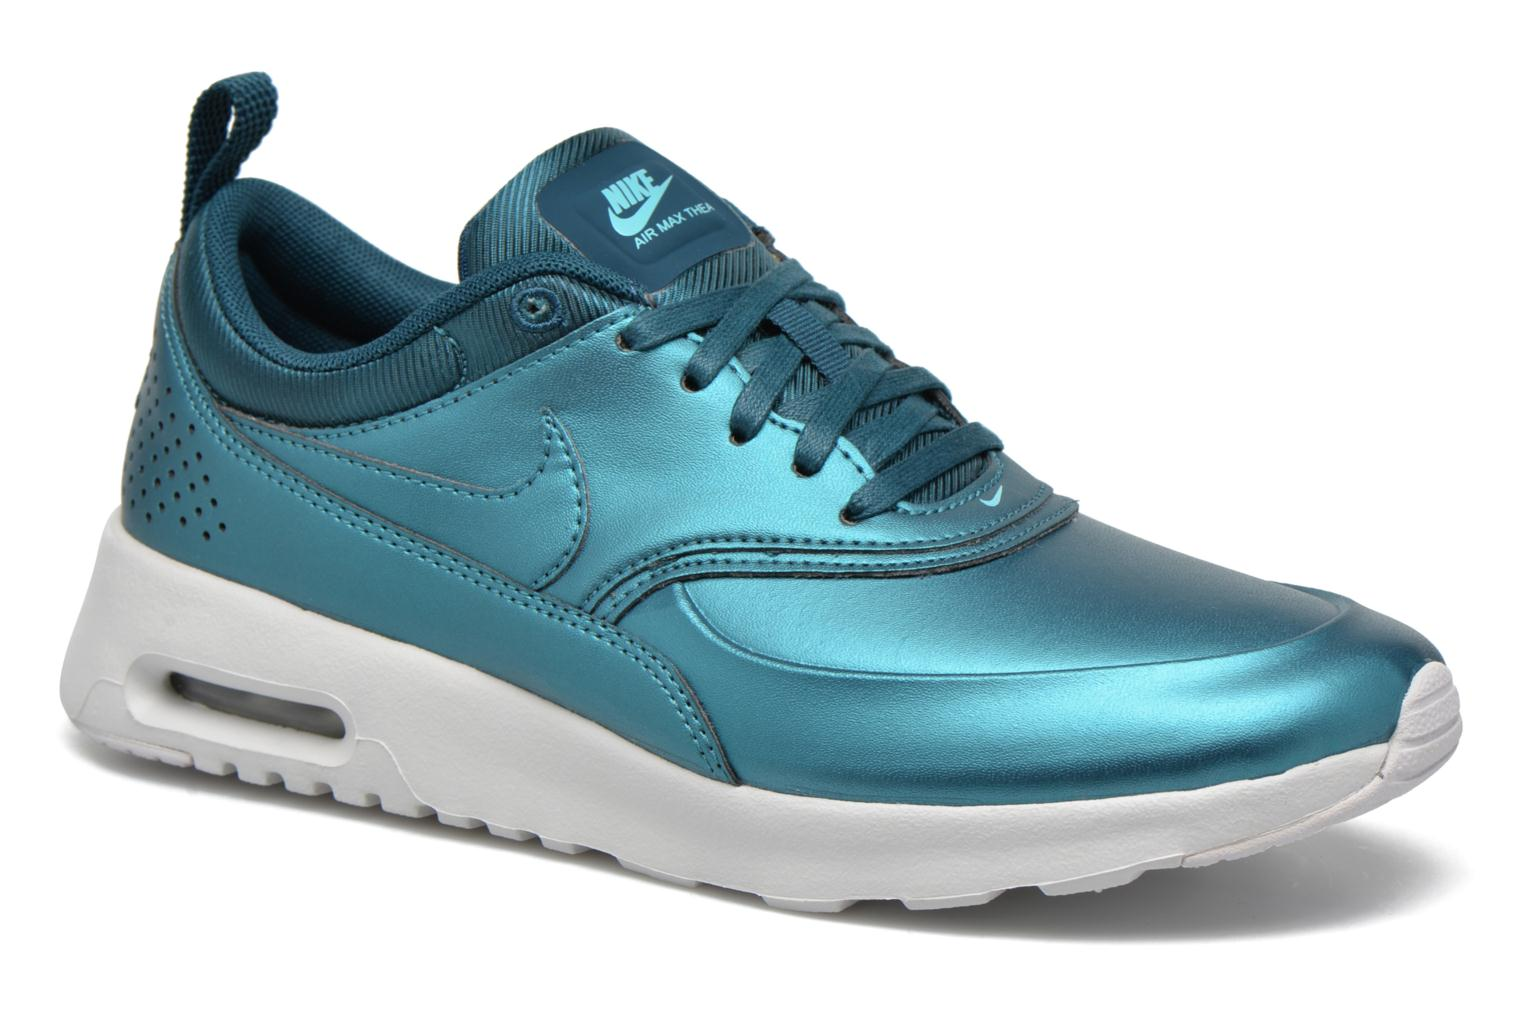 W Nike Air Max Thea Se Mtlc Dark Sea/Mtlc Dark Sea-Summit White